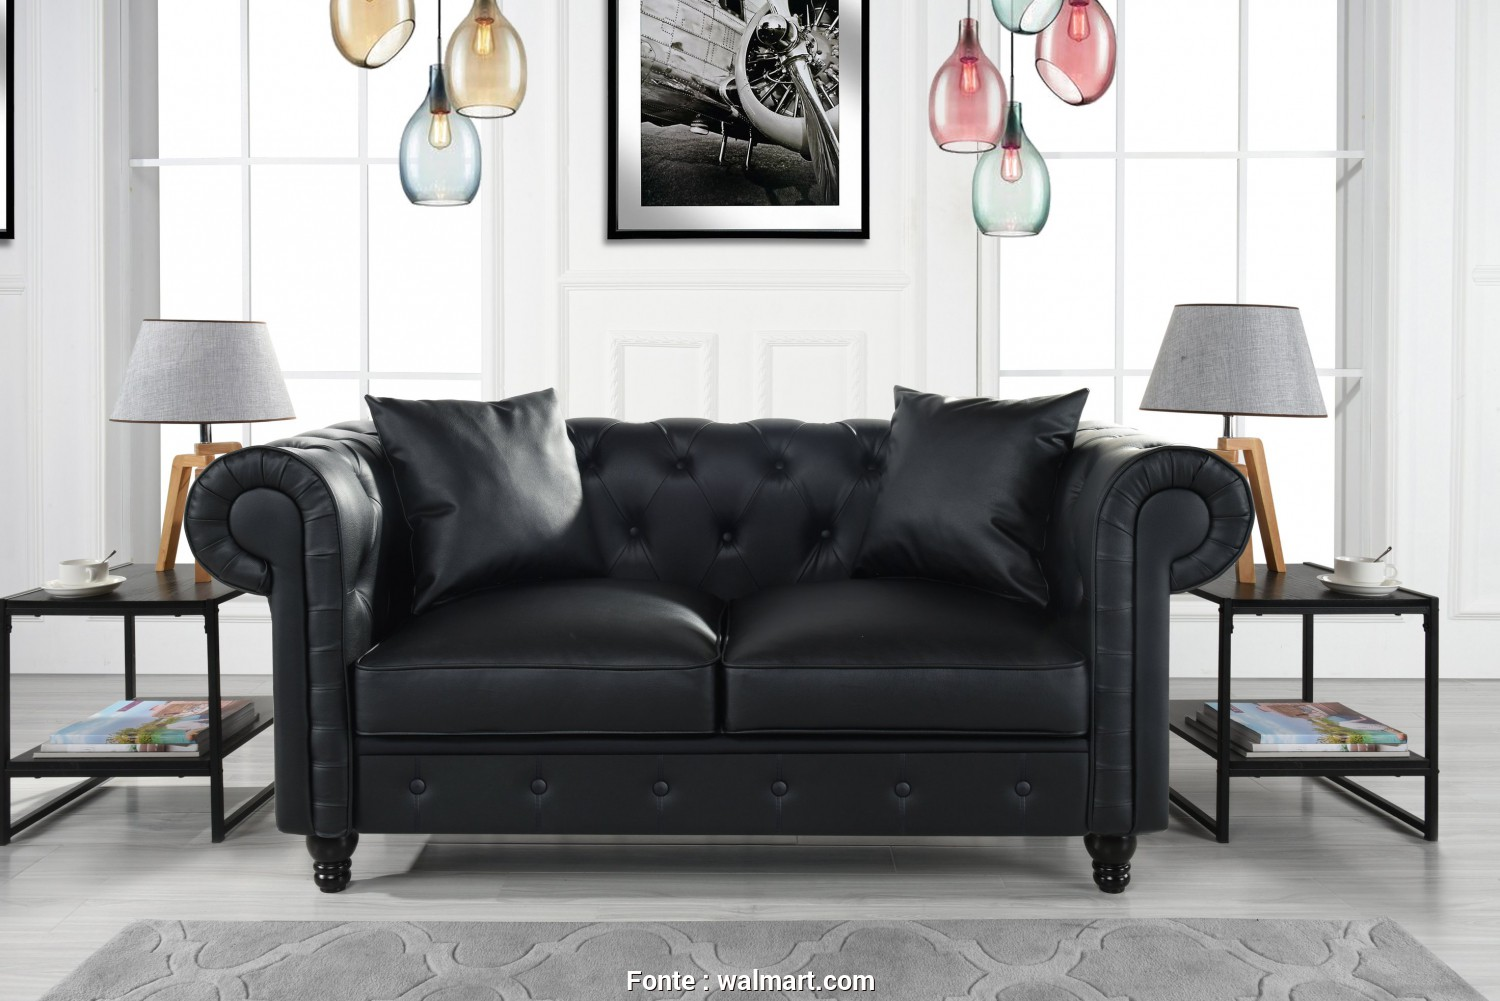 Divano Chesterfield.Com, Bellissimo Divano Roma Furniture Classic Living Room Bonded Leather Scroll, Chesterfield Loveseat (Black), Walmart.Com